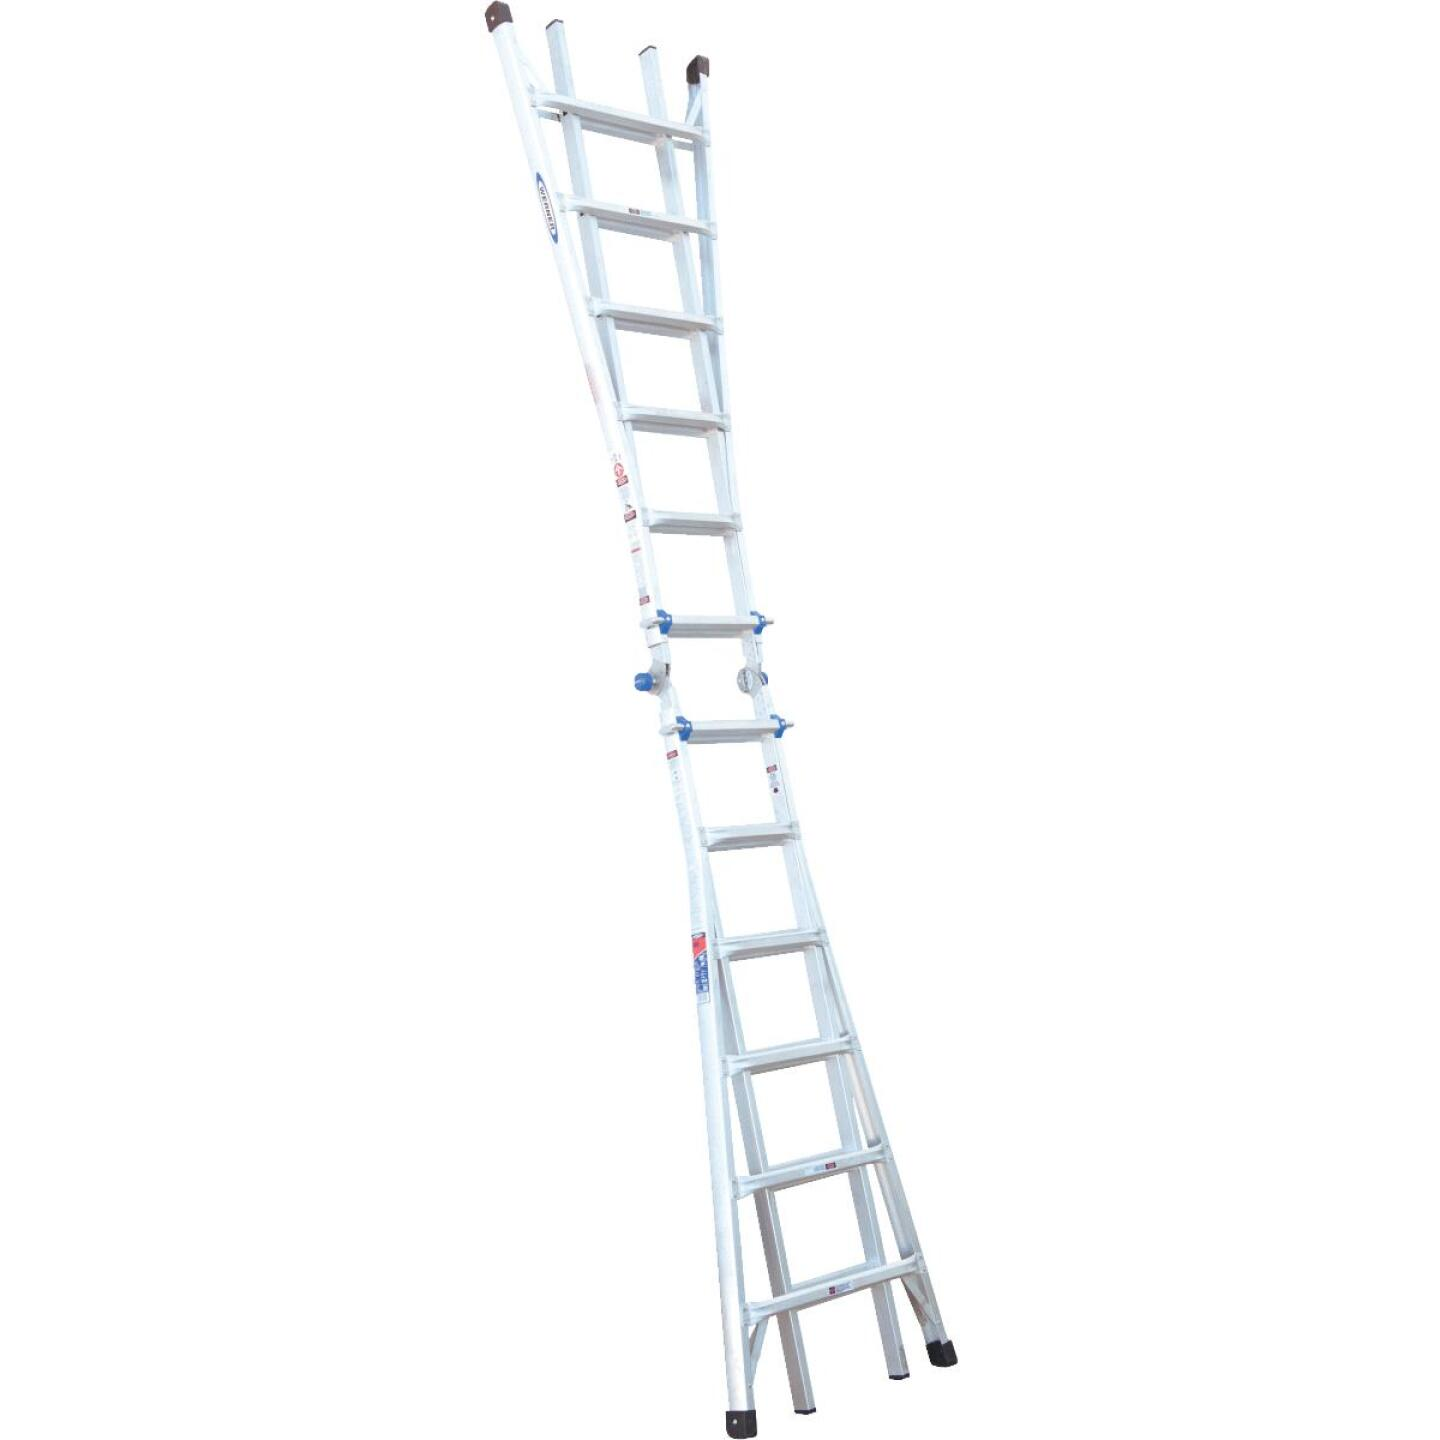 Werner 26 Ft. Aluminum Multi-Position Telescoping Ladder with 300 Lb. Load Capacity Type IA Ladder Rating Image 6